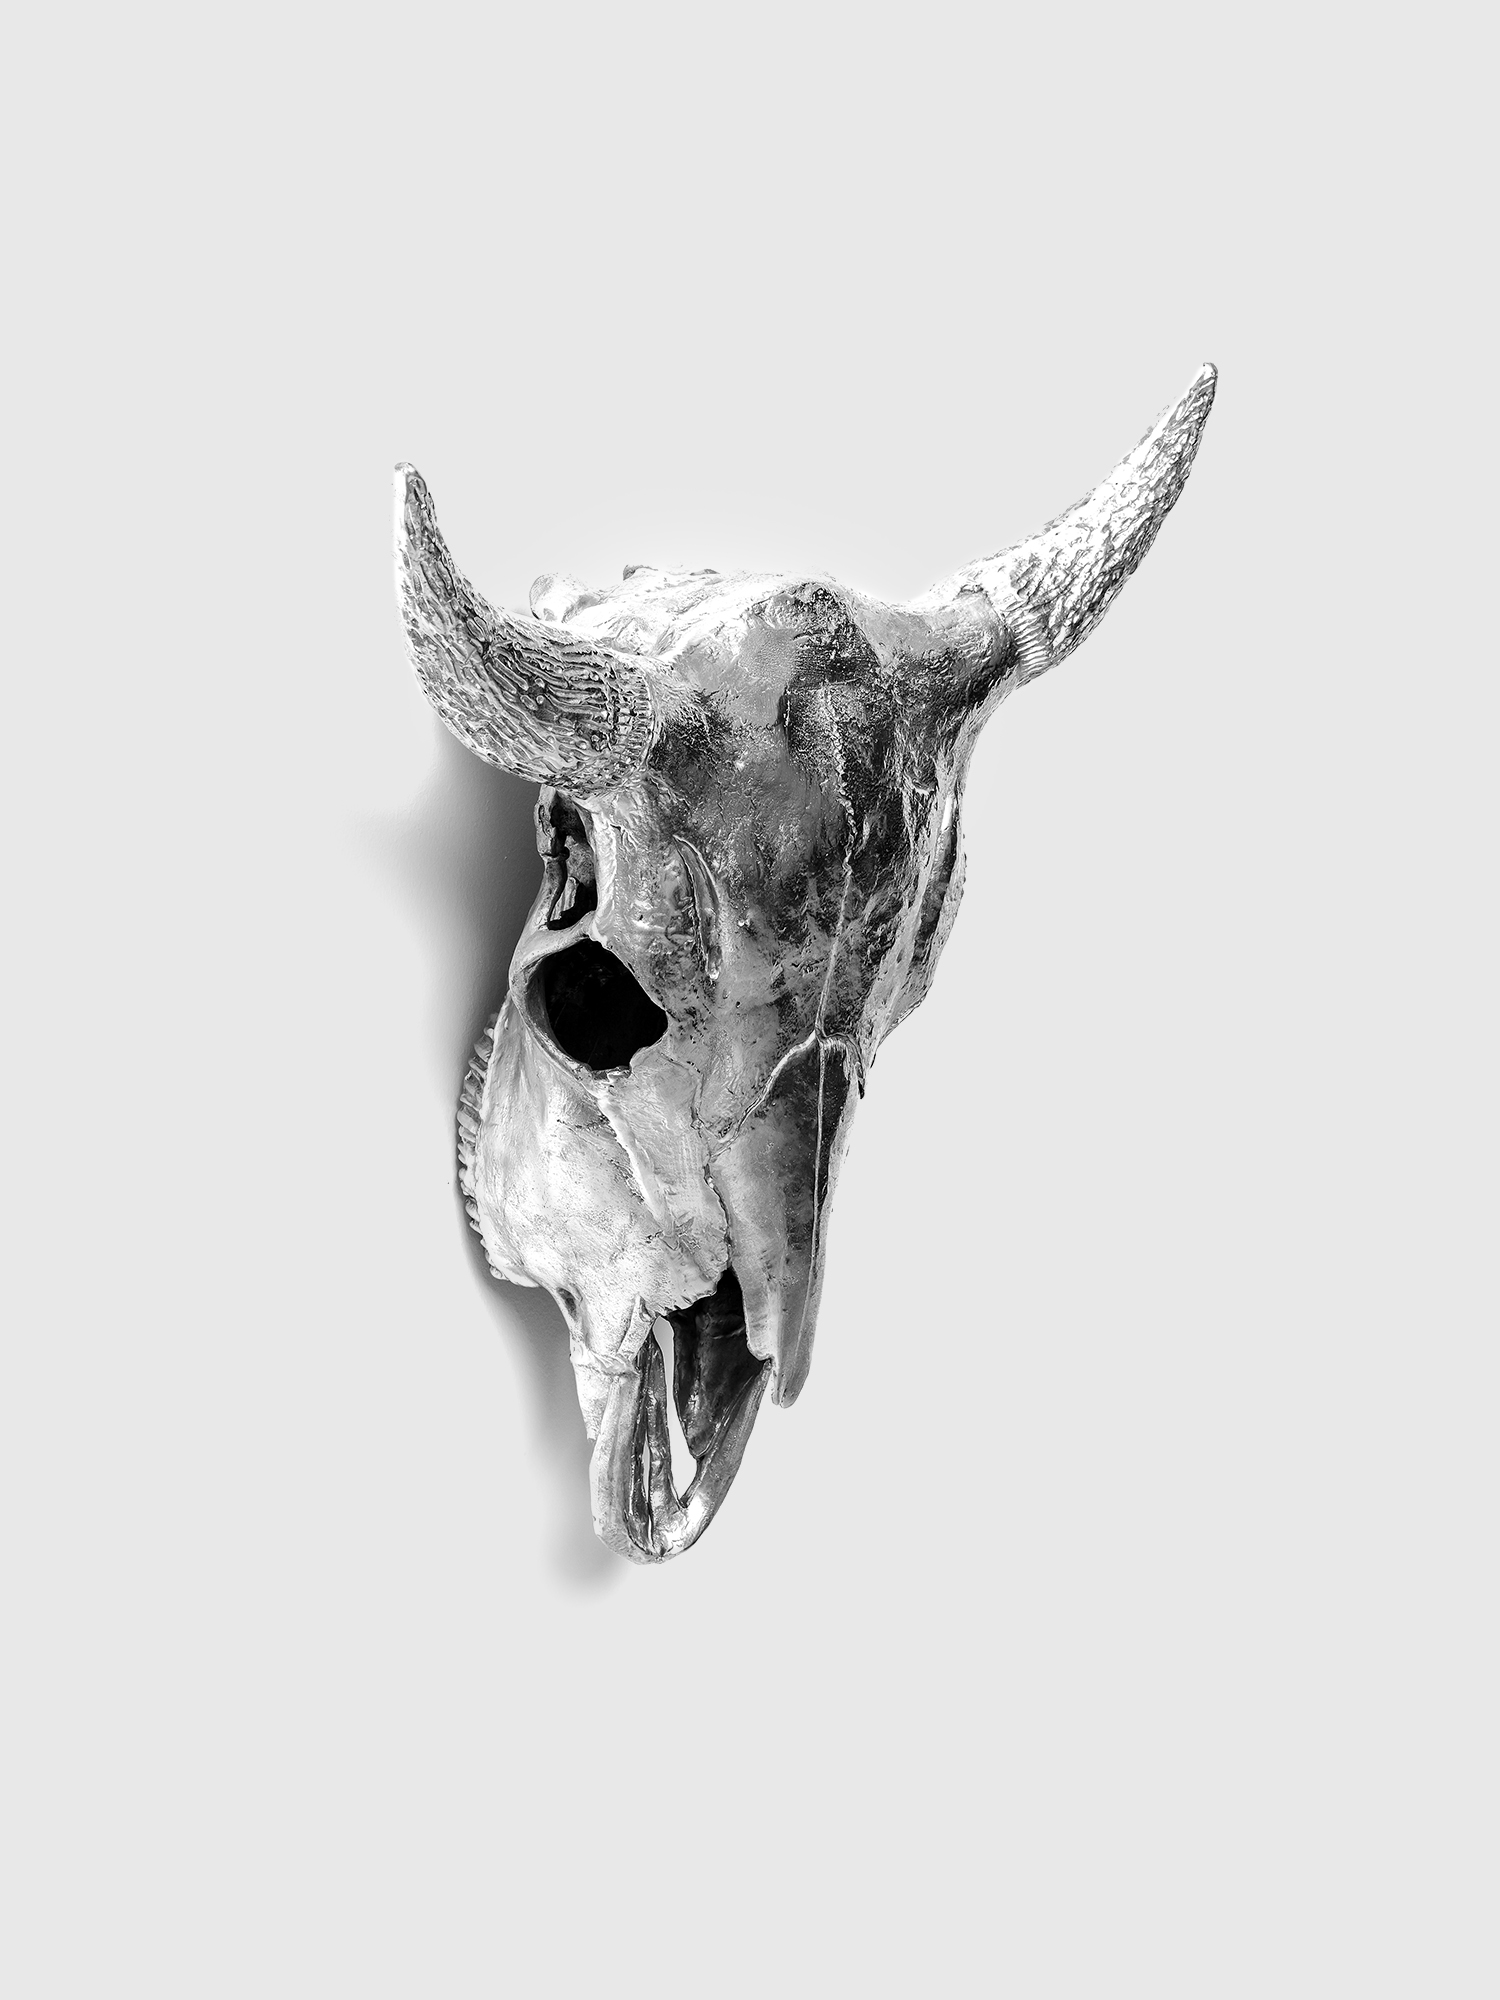 Diesel - 10899 WUNDERKAMMER,  - Home Accessories - Image 3